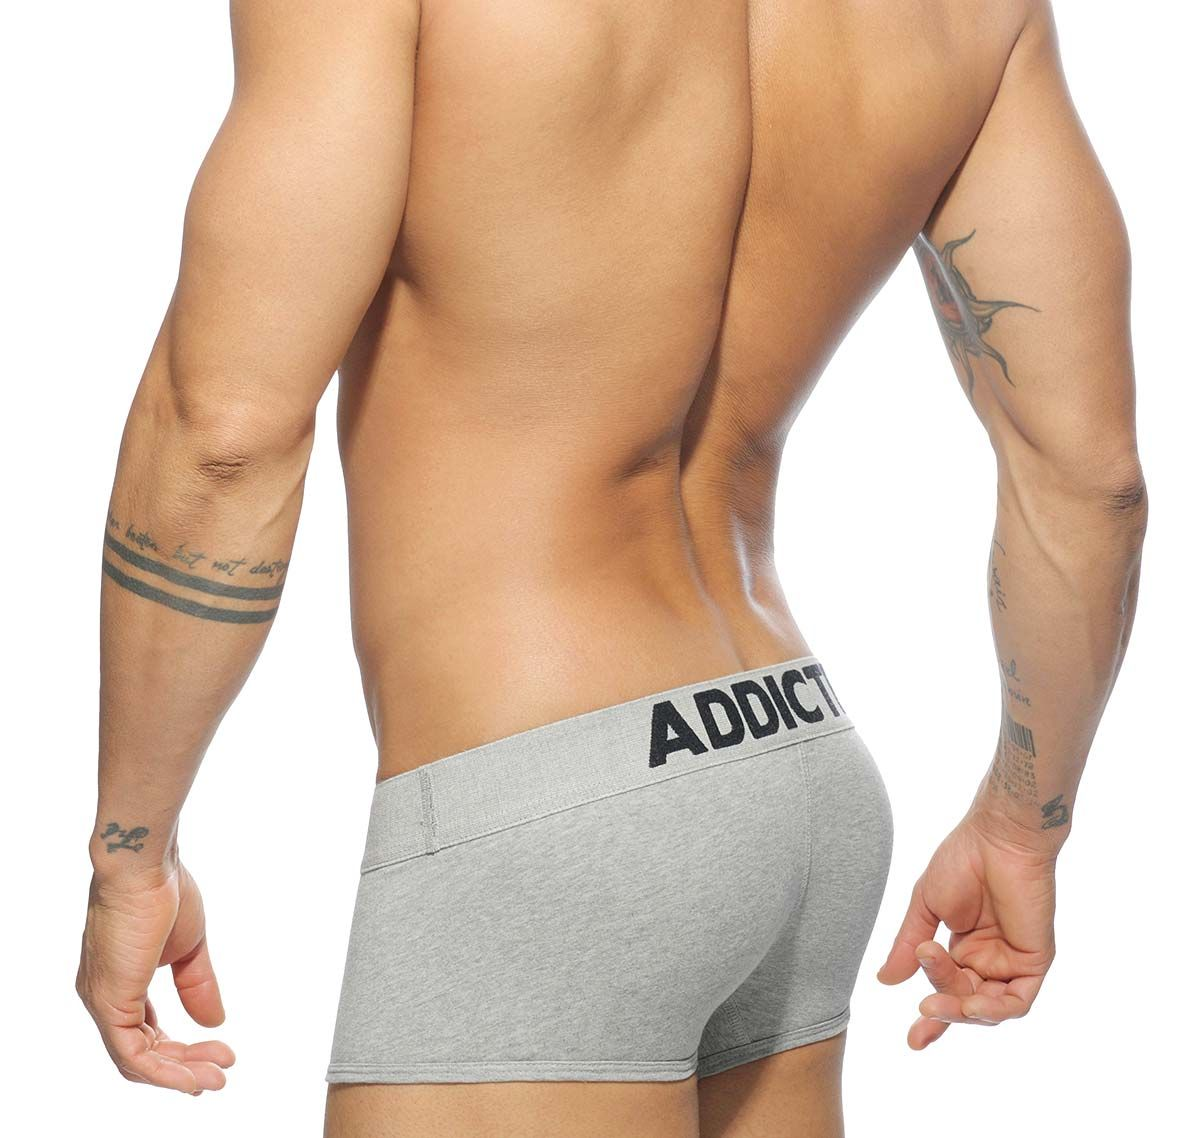 Addicted Boxershorts MY BASIC BOXER AD468, grau